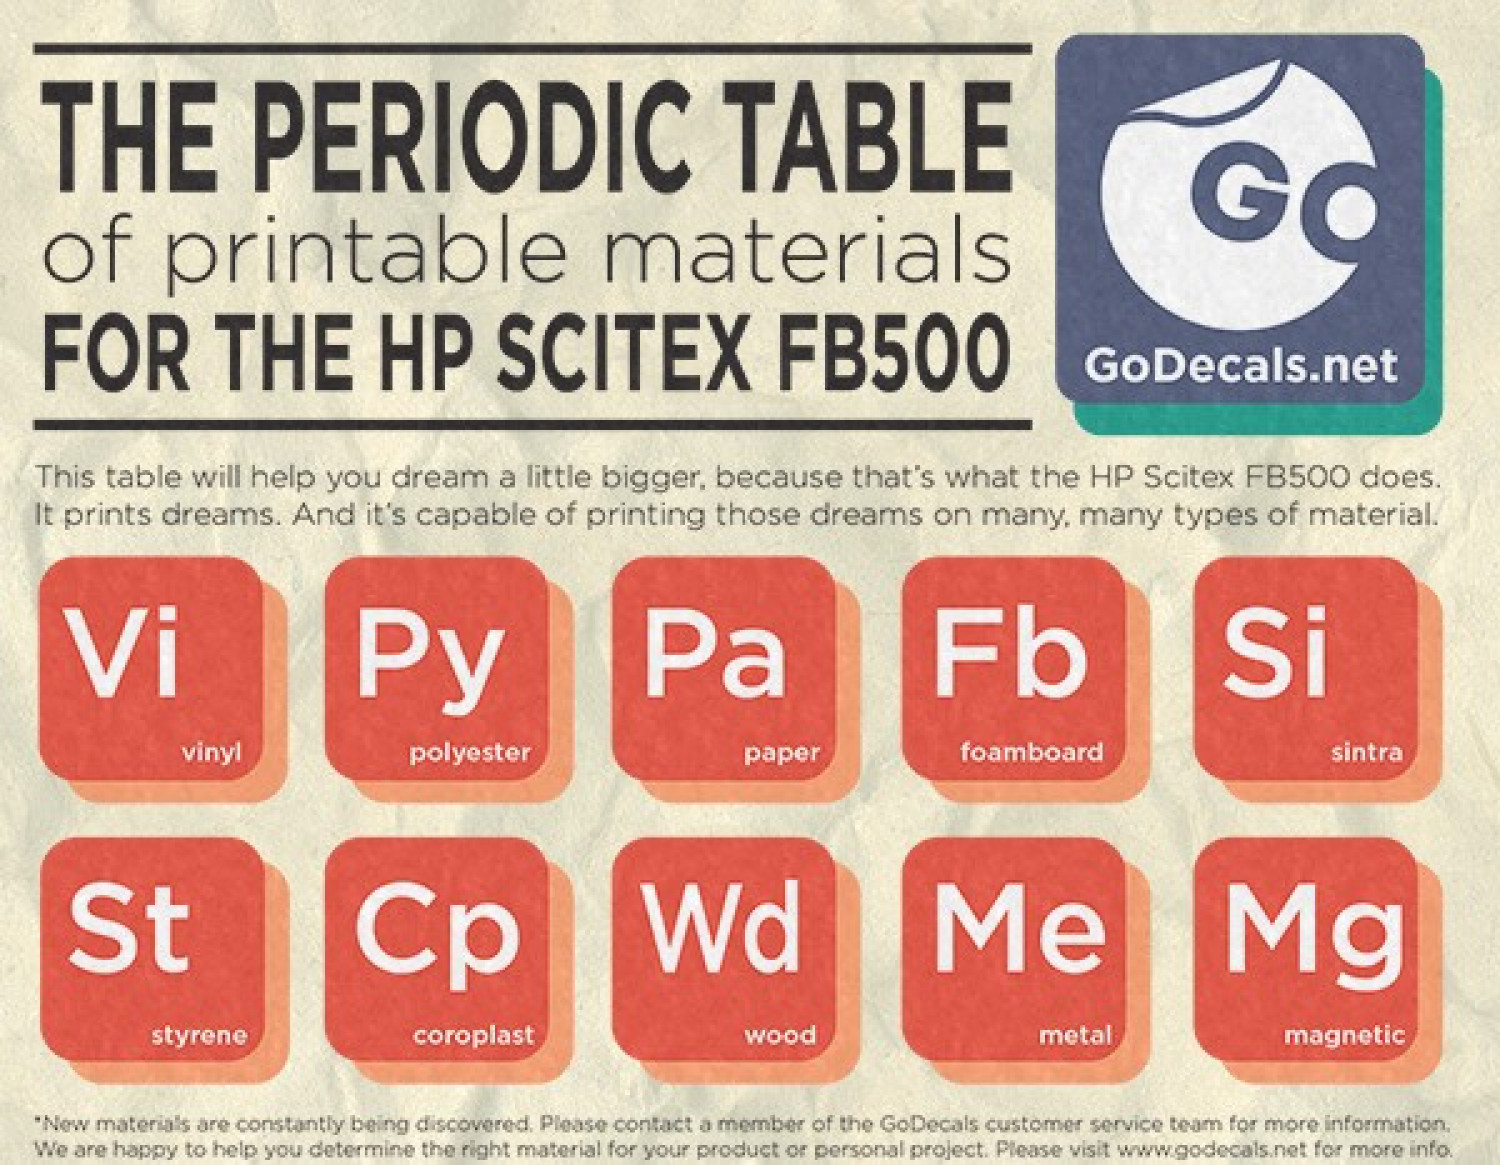 The periodic table of printable materials visual the periodic table of printable materials infographic gamestrikefo Images